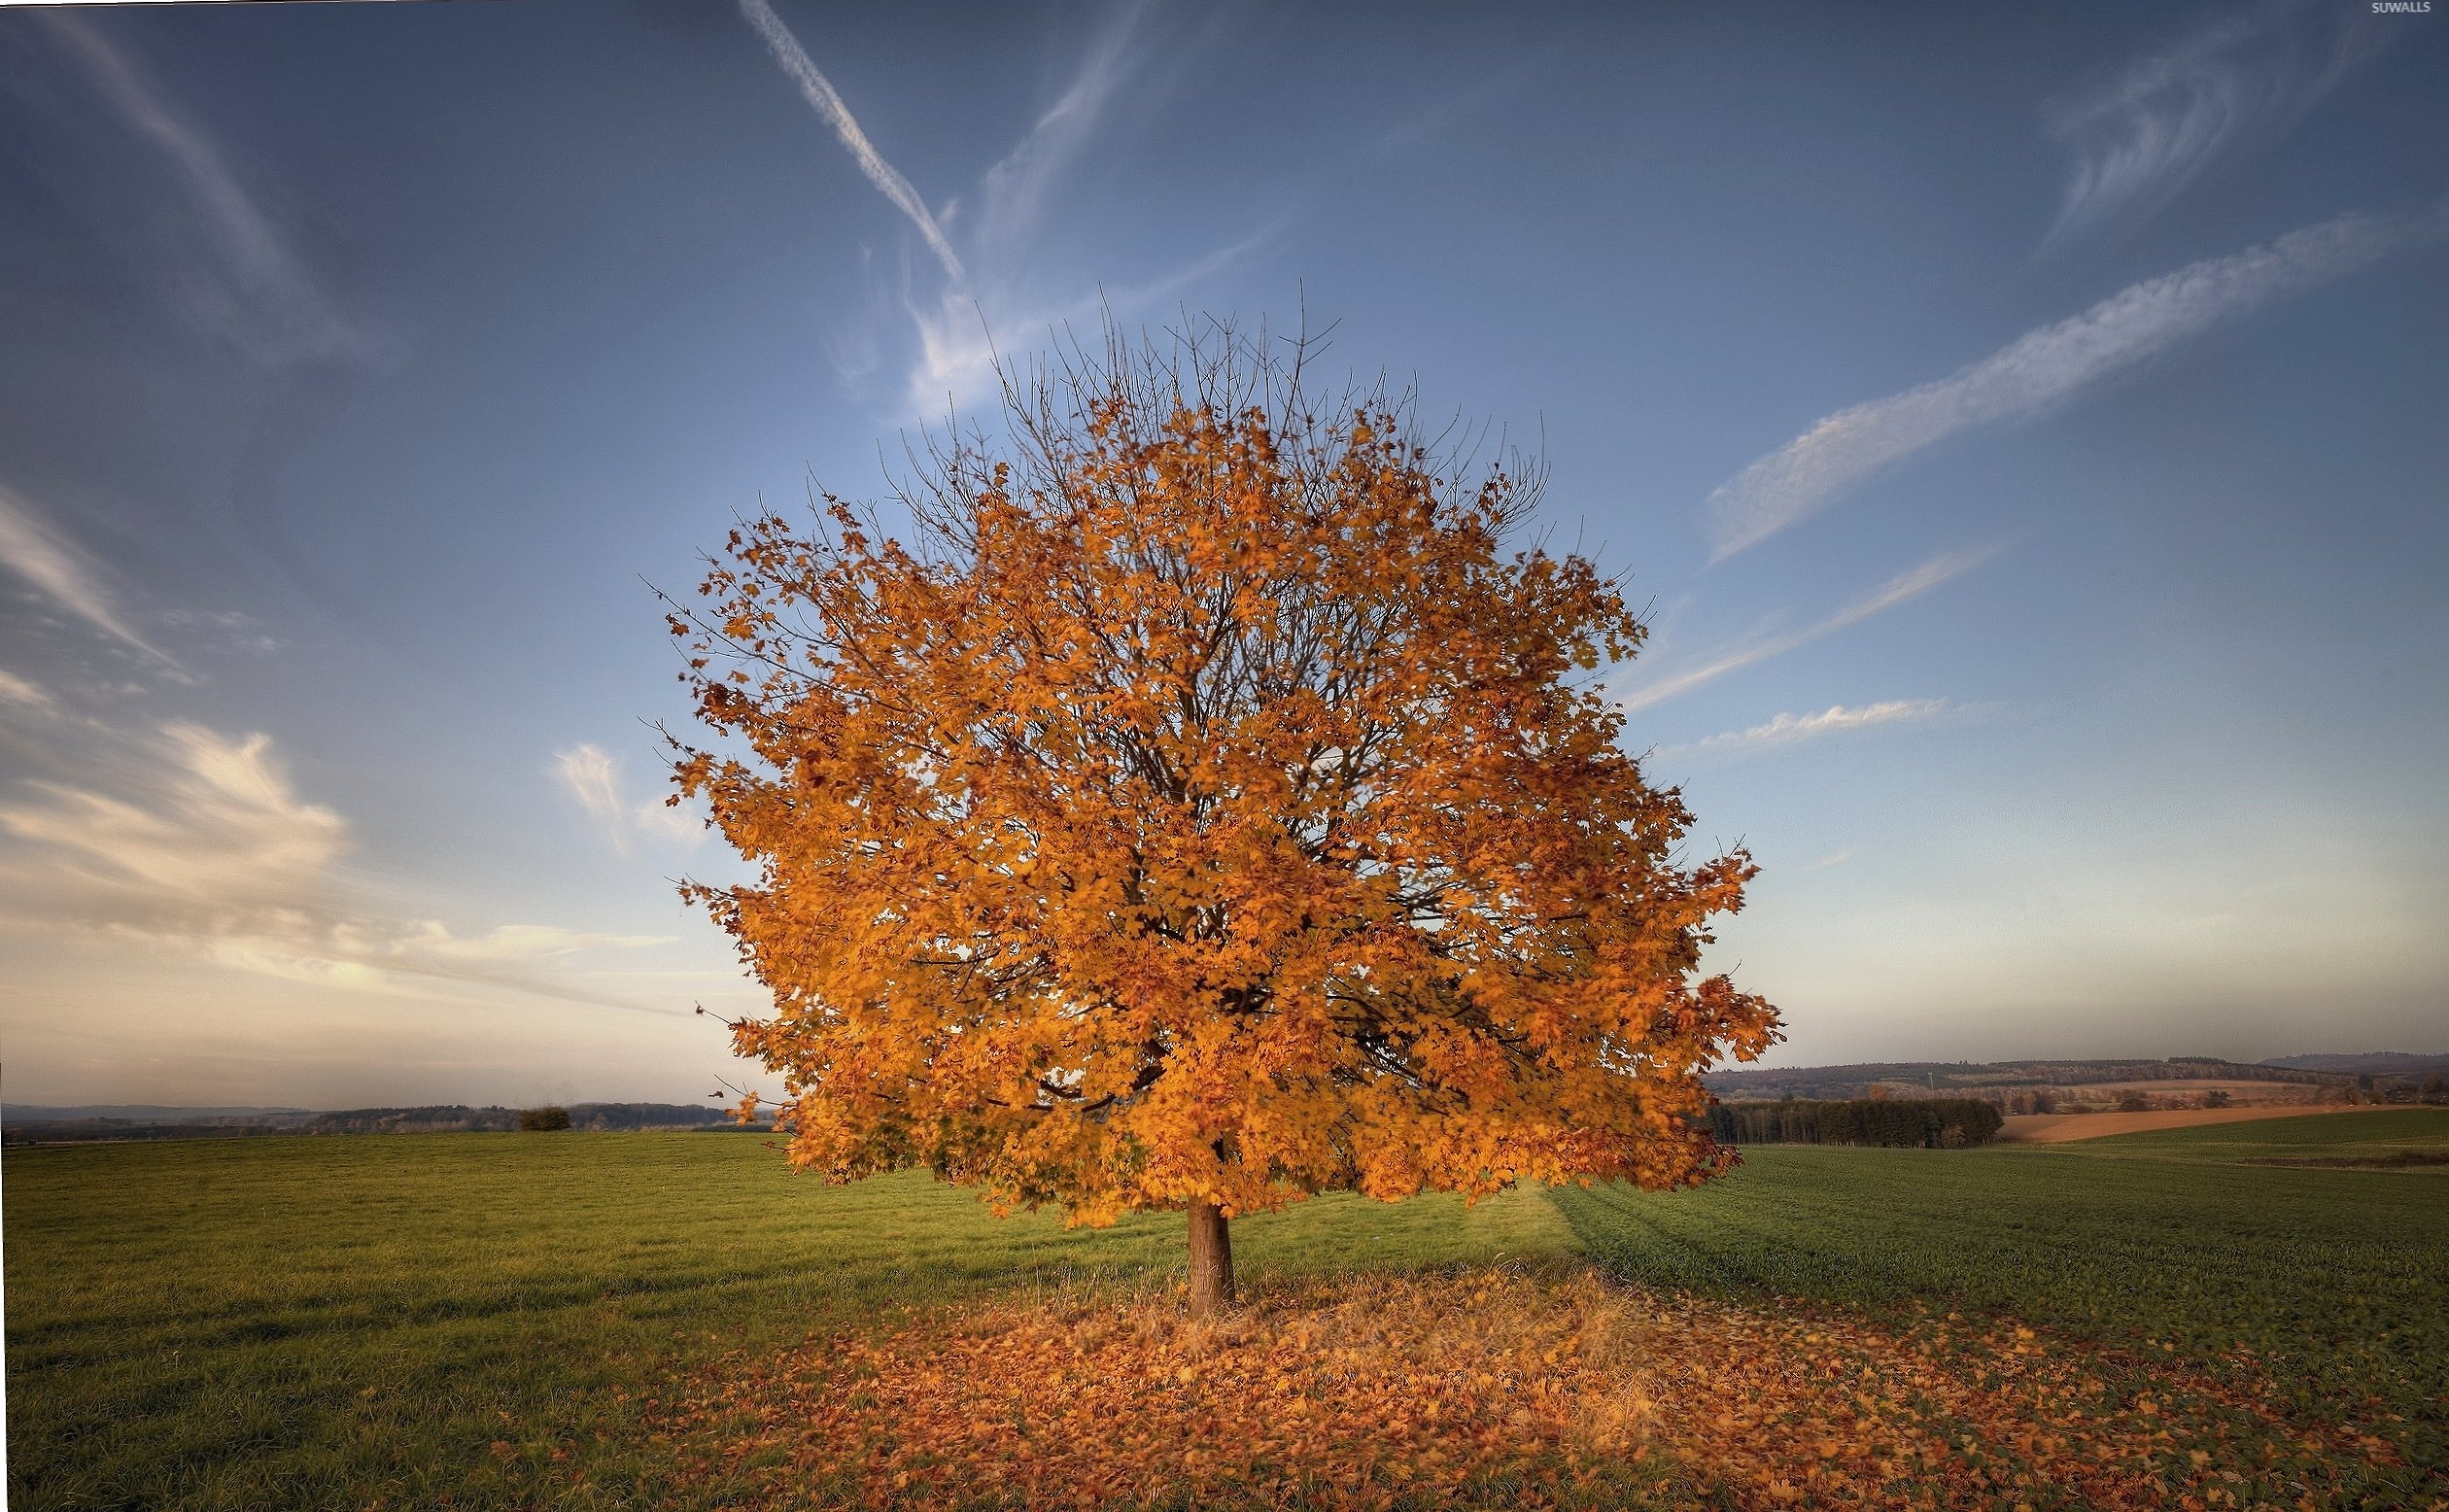 Lonesome autumn tree losing its leaves on the field at 1600 x 1200 size wallpapers HD quality